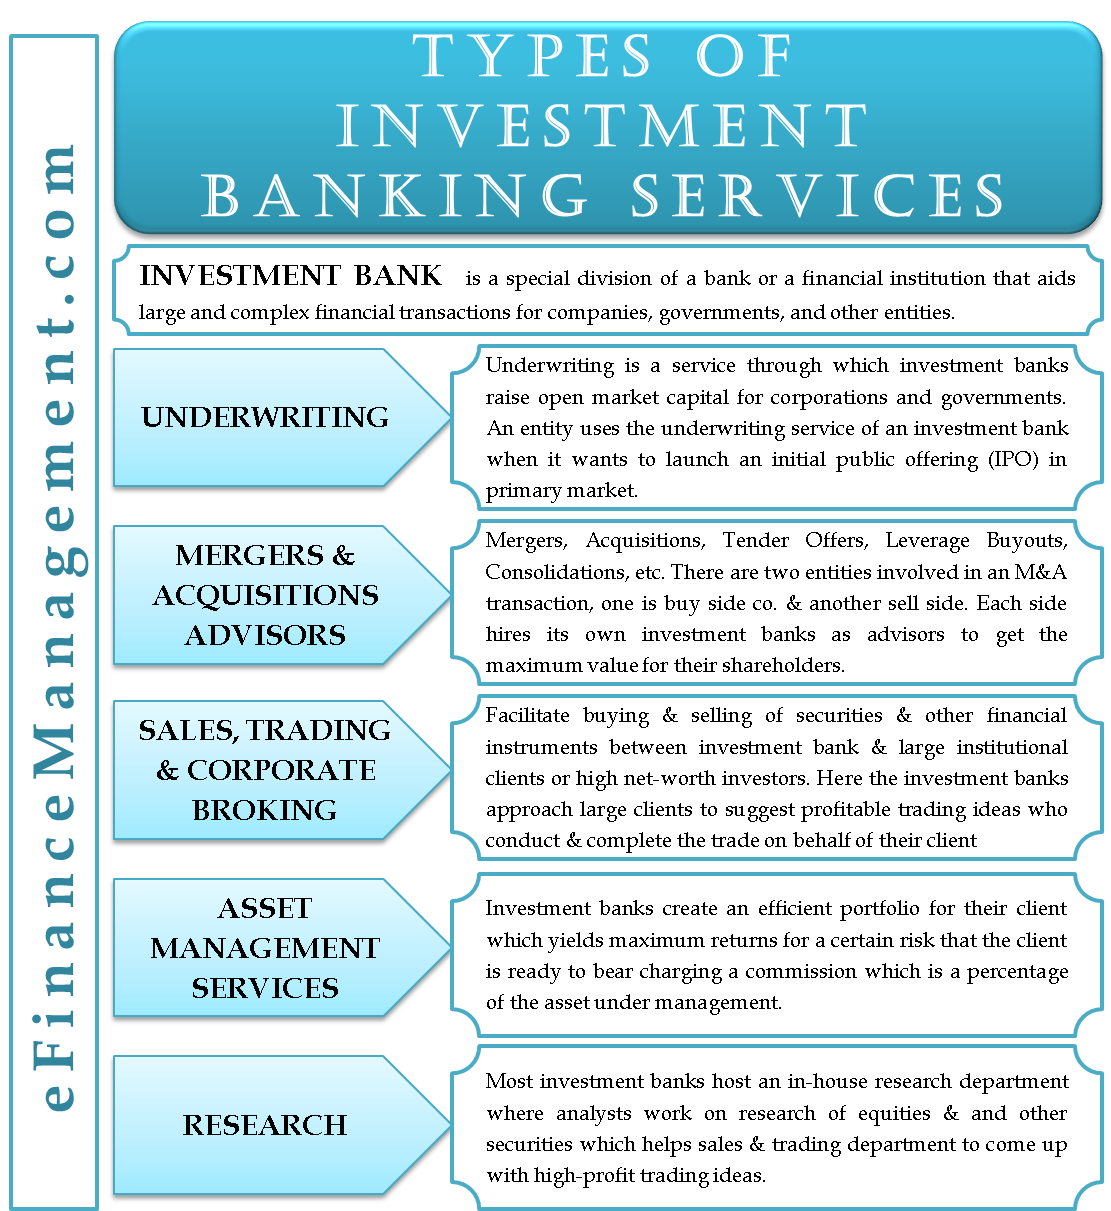 Types of Investment Banking Services